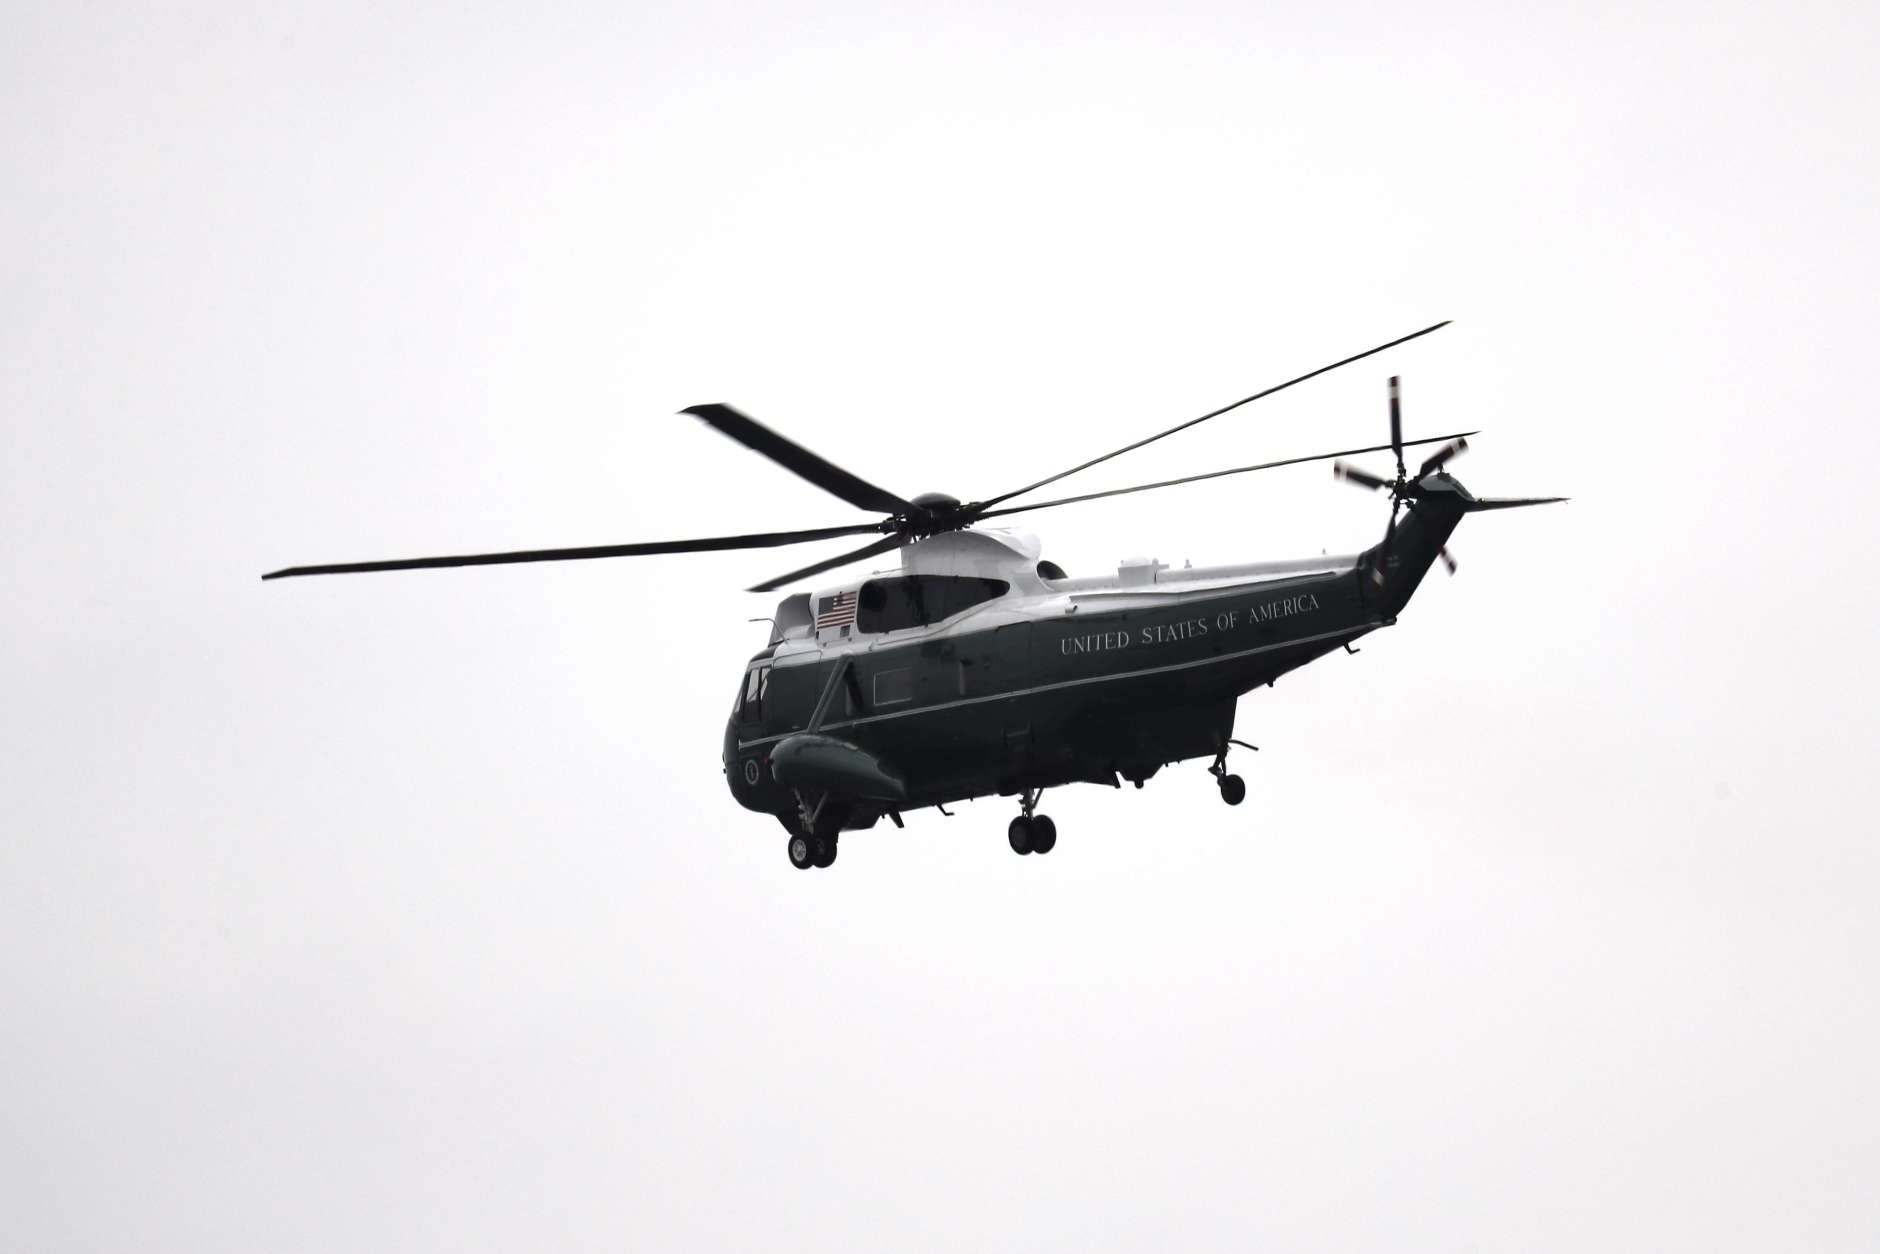 A Marine helicopter carries former president Barack Obama and Michelle Obama from the Capitol Hill in Washington, Friday, Jan. 20, 2017, en route to Andrews Air Force Base, Md. following the presidential inauguration of Donald Trump. (Rob Carr/Pool Photo via AP)